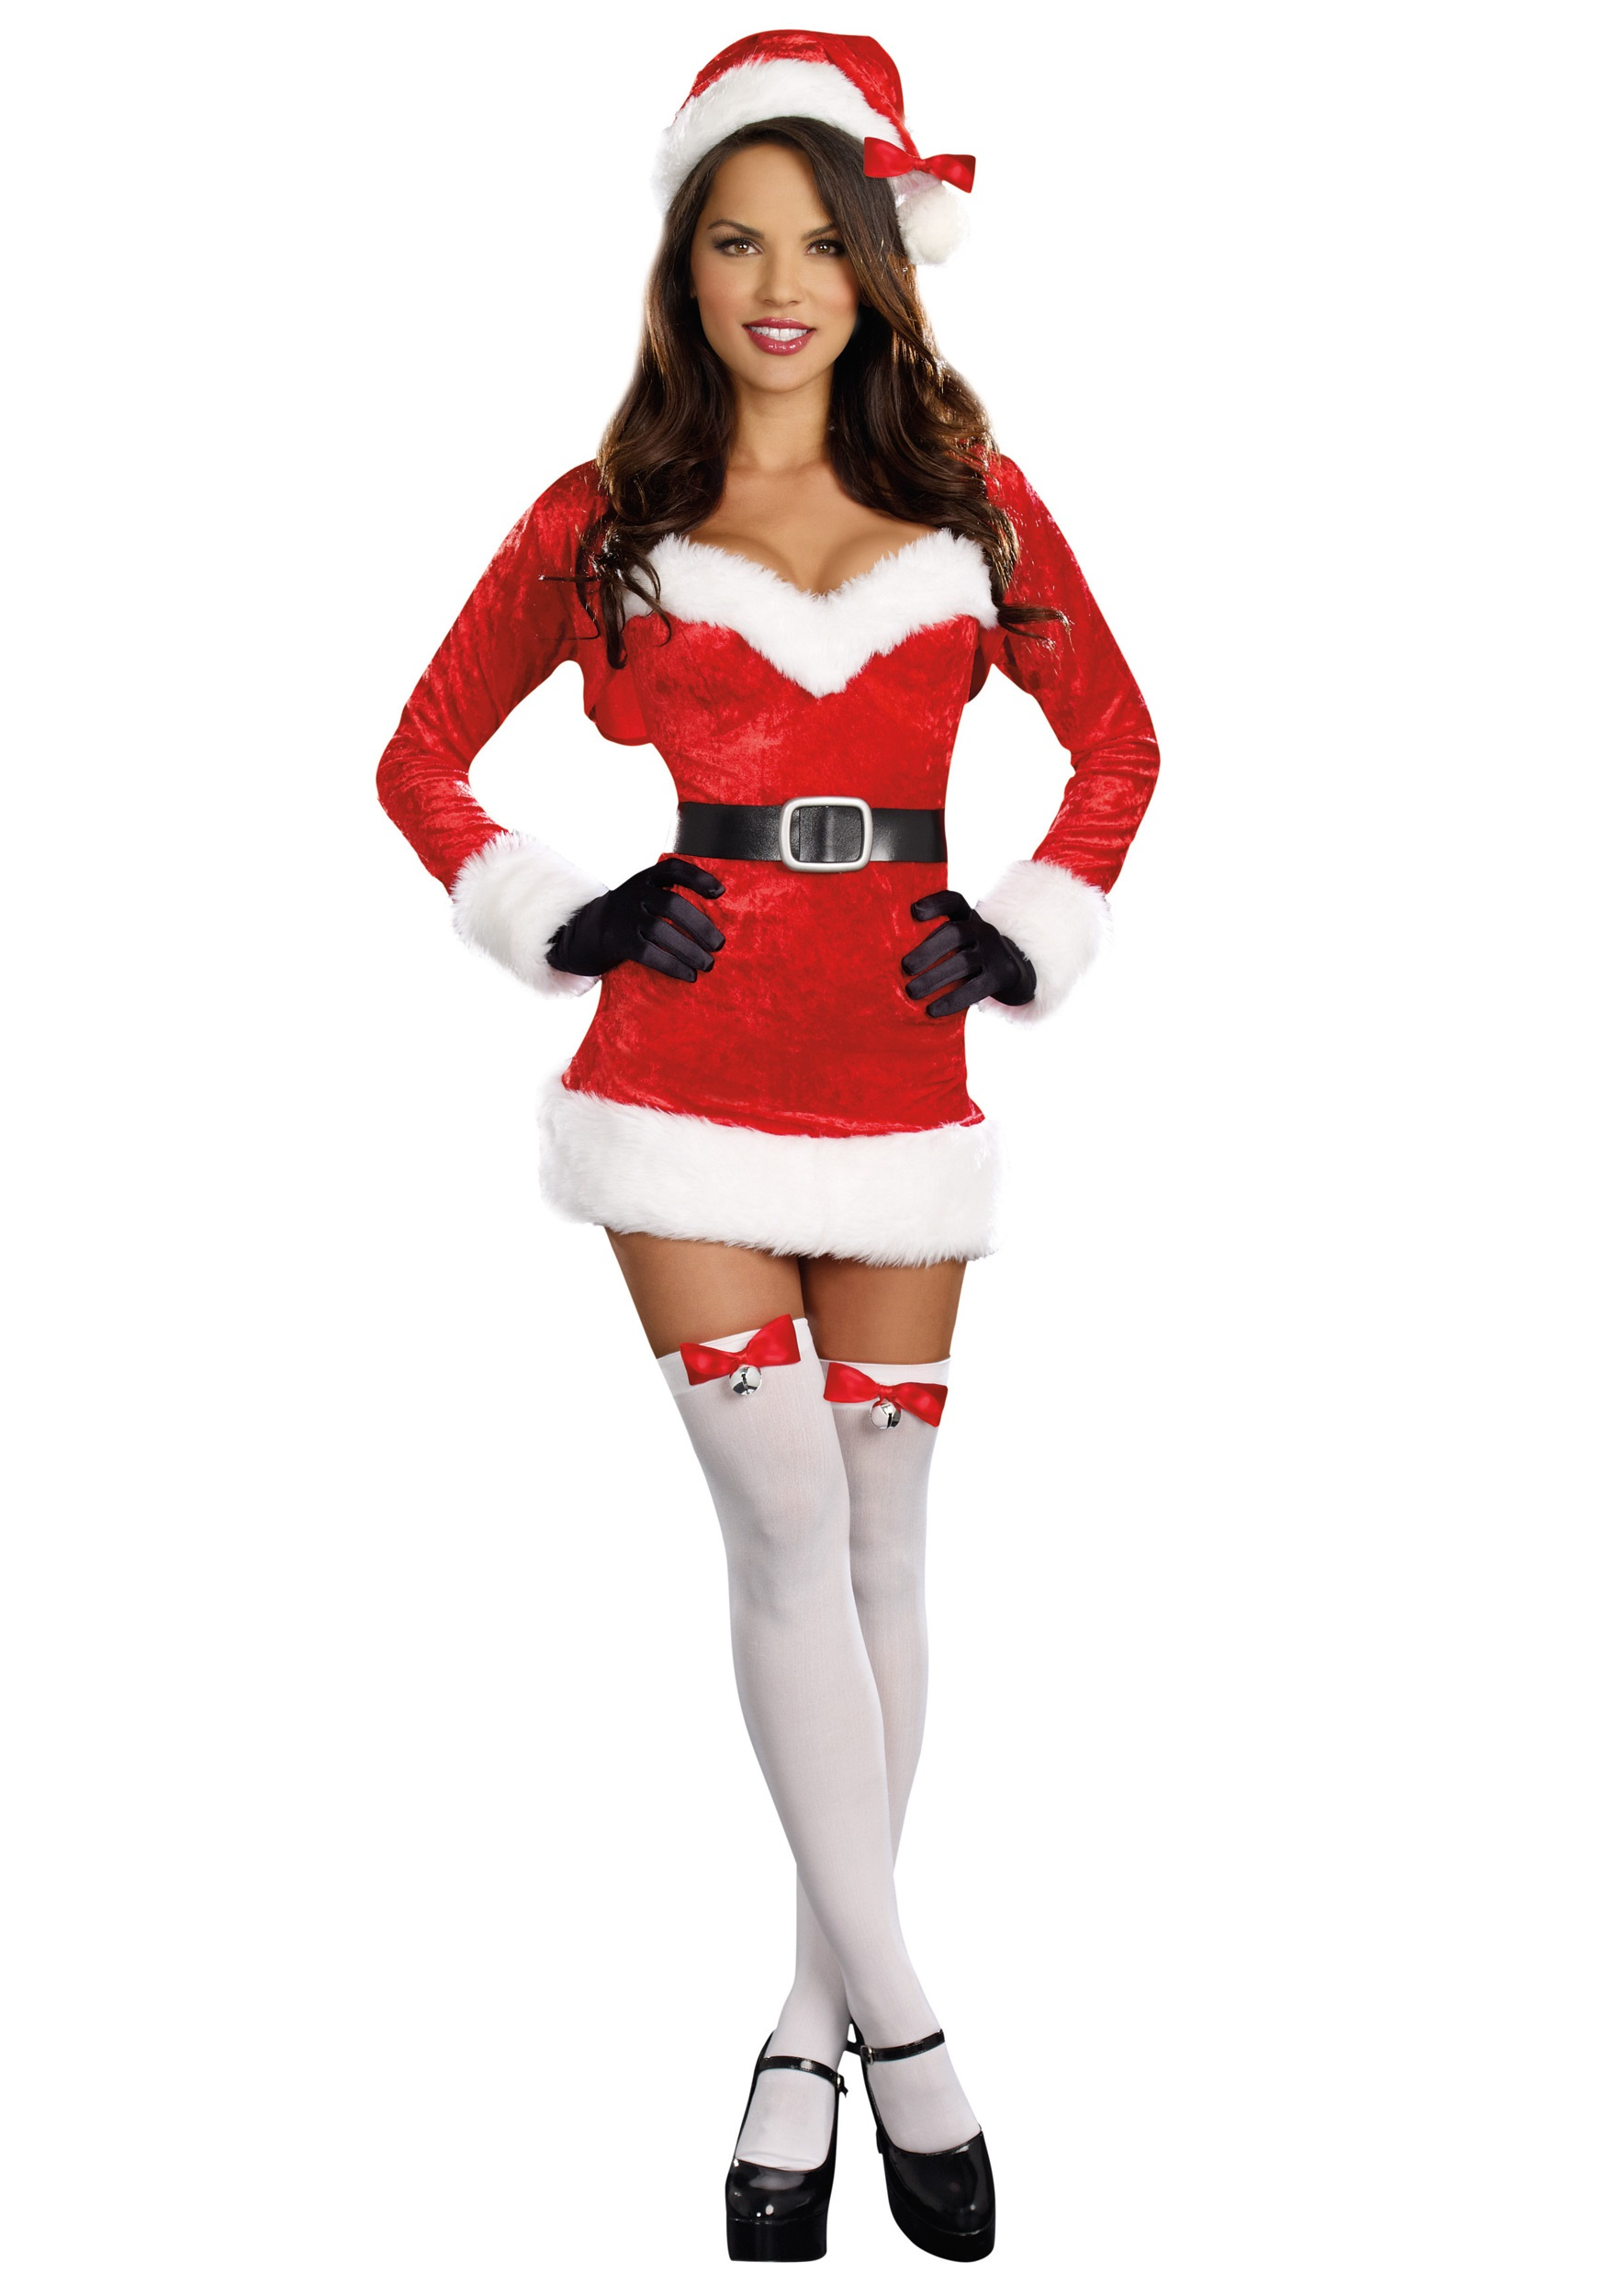 Outdoor halloween party decorations - Sexy Santa Baby Costume